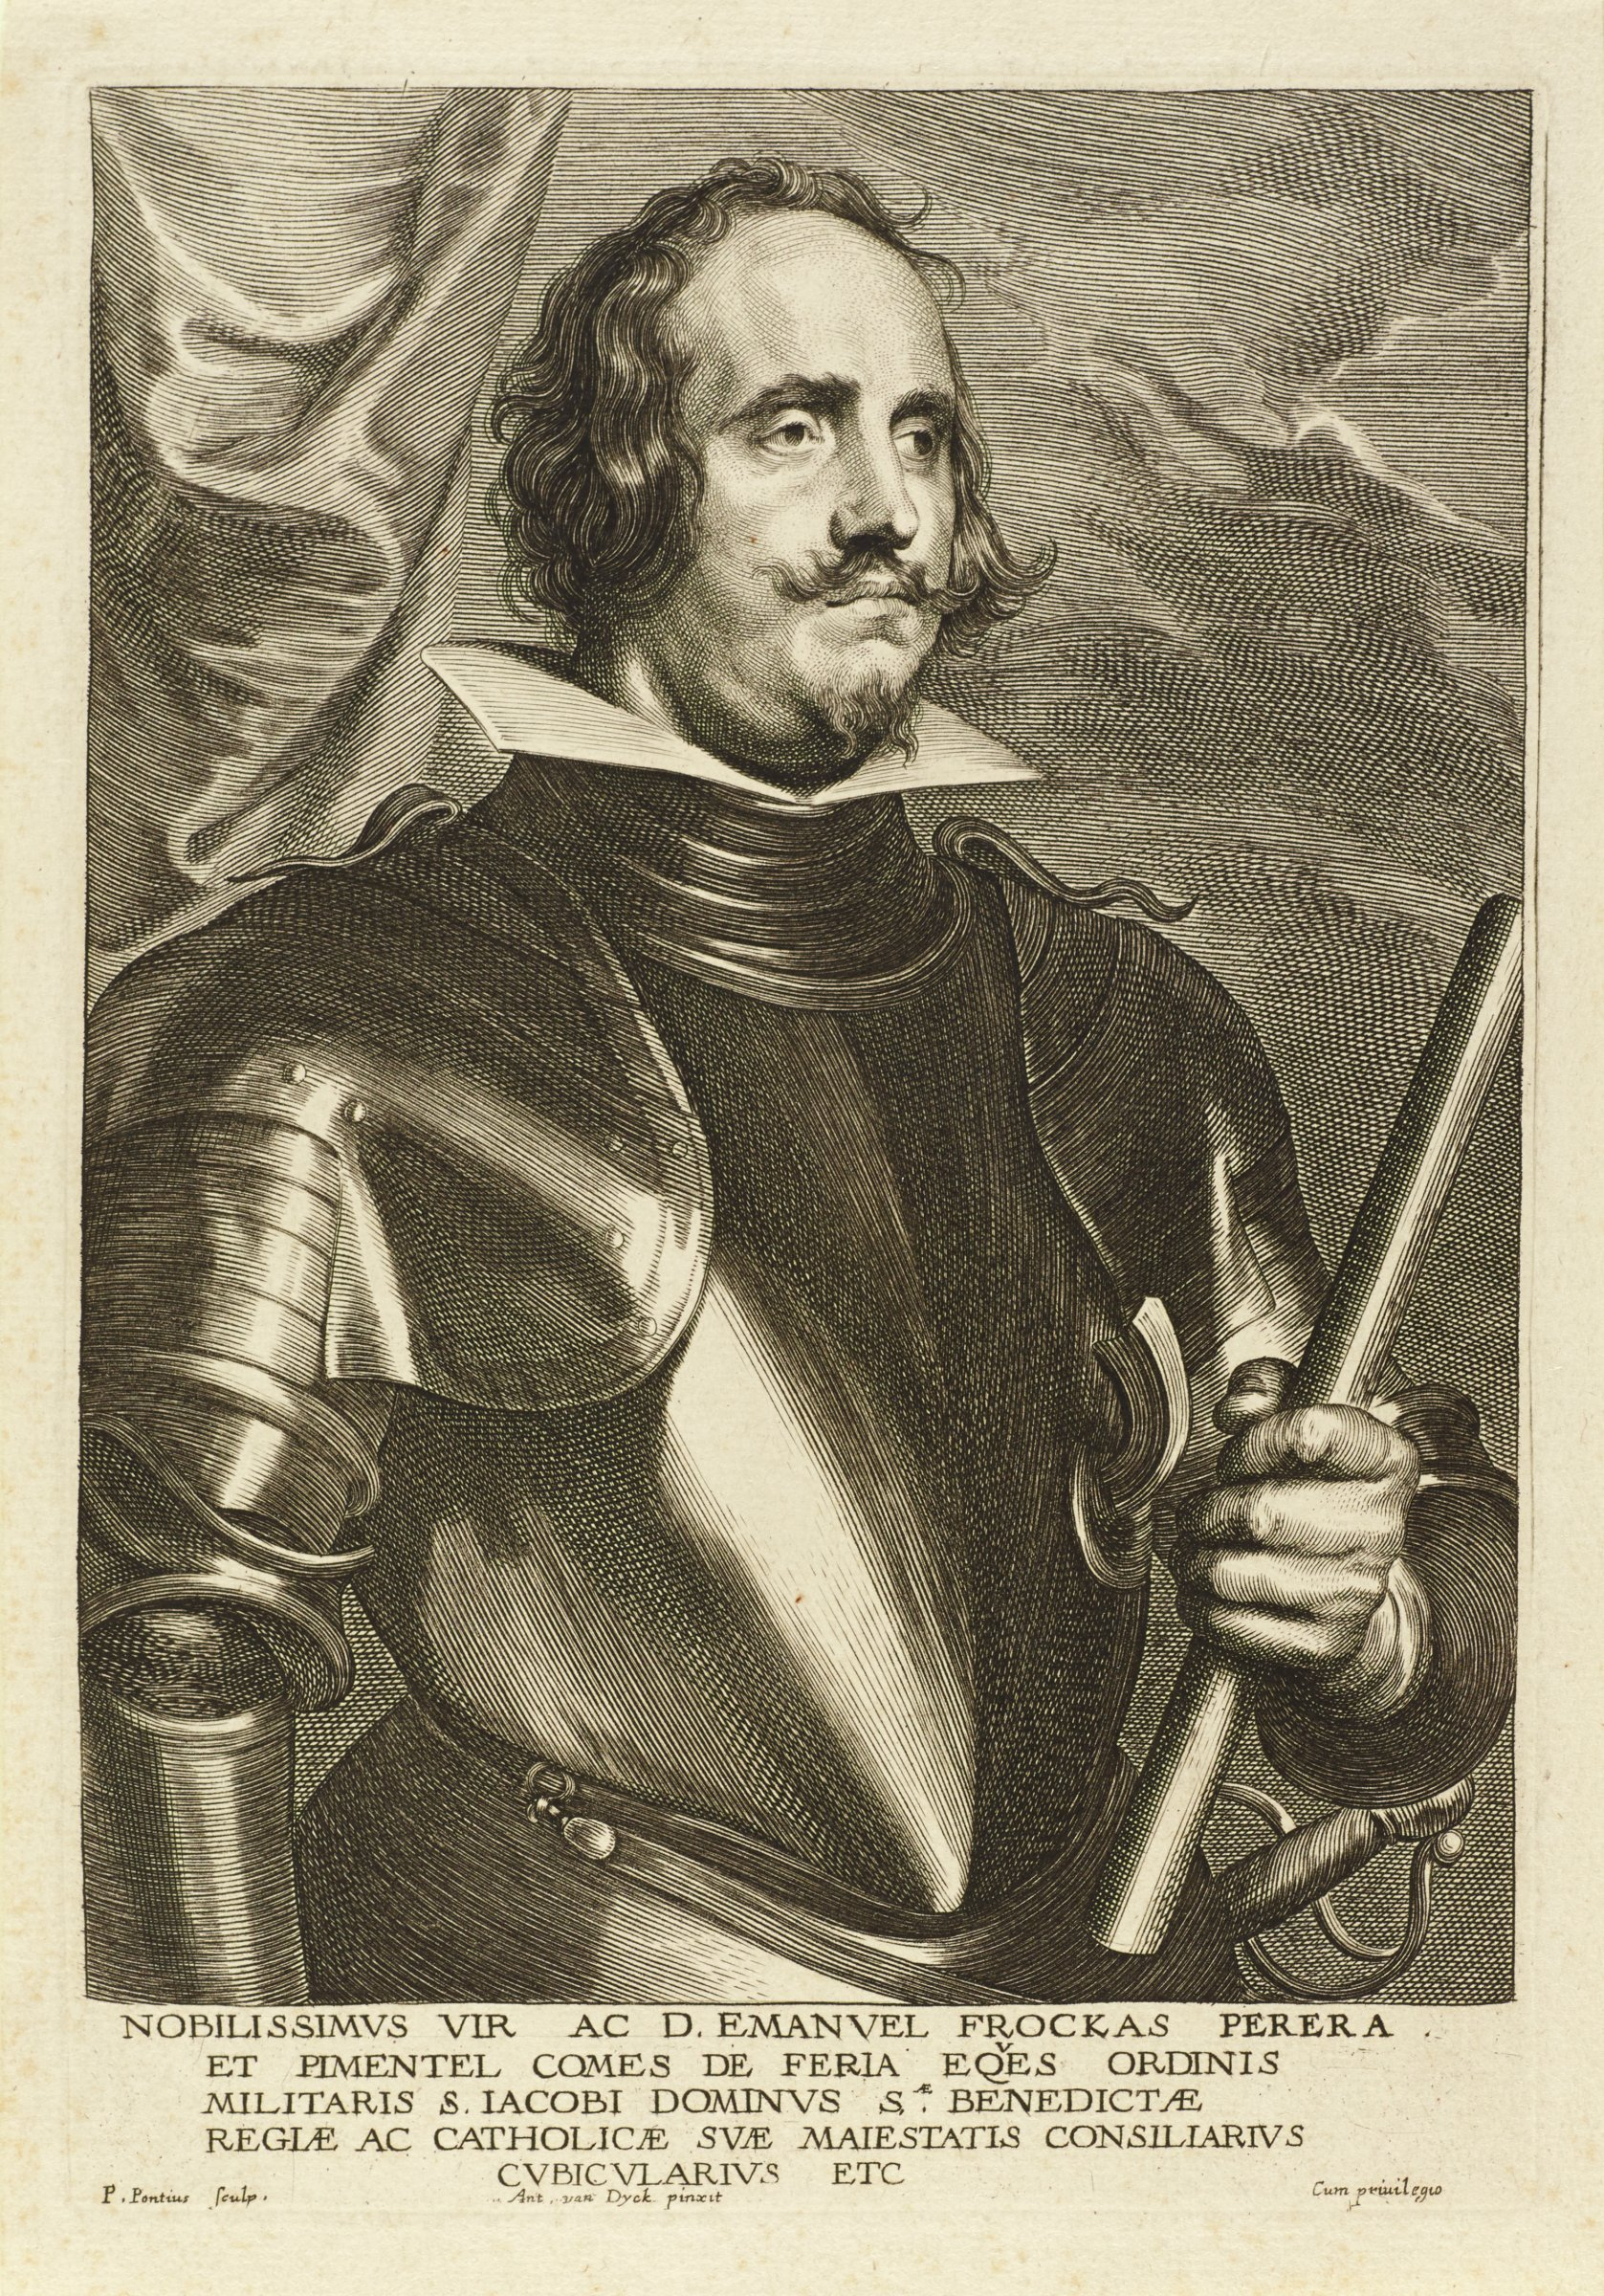 Emanuel Frockas, Count of Feria, was a general in Spanish service. He is seen here in portrait from the waist up, slightly angled towards the right, looking away from the viewer. He wears armor and holds a baton in his left hand. He stands infront of a curtain and cloudy sky. This is from the Gillis Hendricx edition of the Iconography (Icones Principum Virorum Doctorum, Pictorum Chalcographorum Statuorum nec non Amatorum Pictoriae Artis Numero Centum), published in 1645.